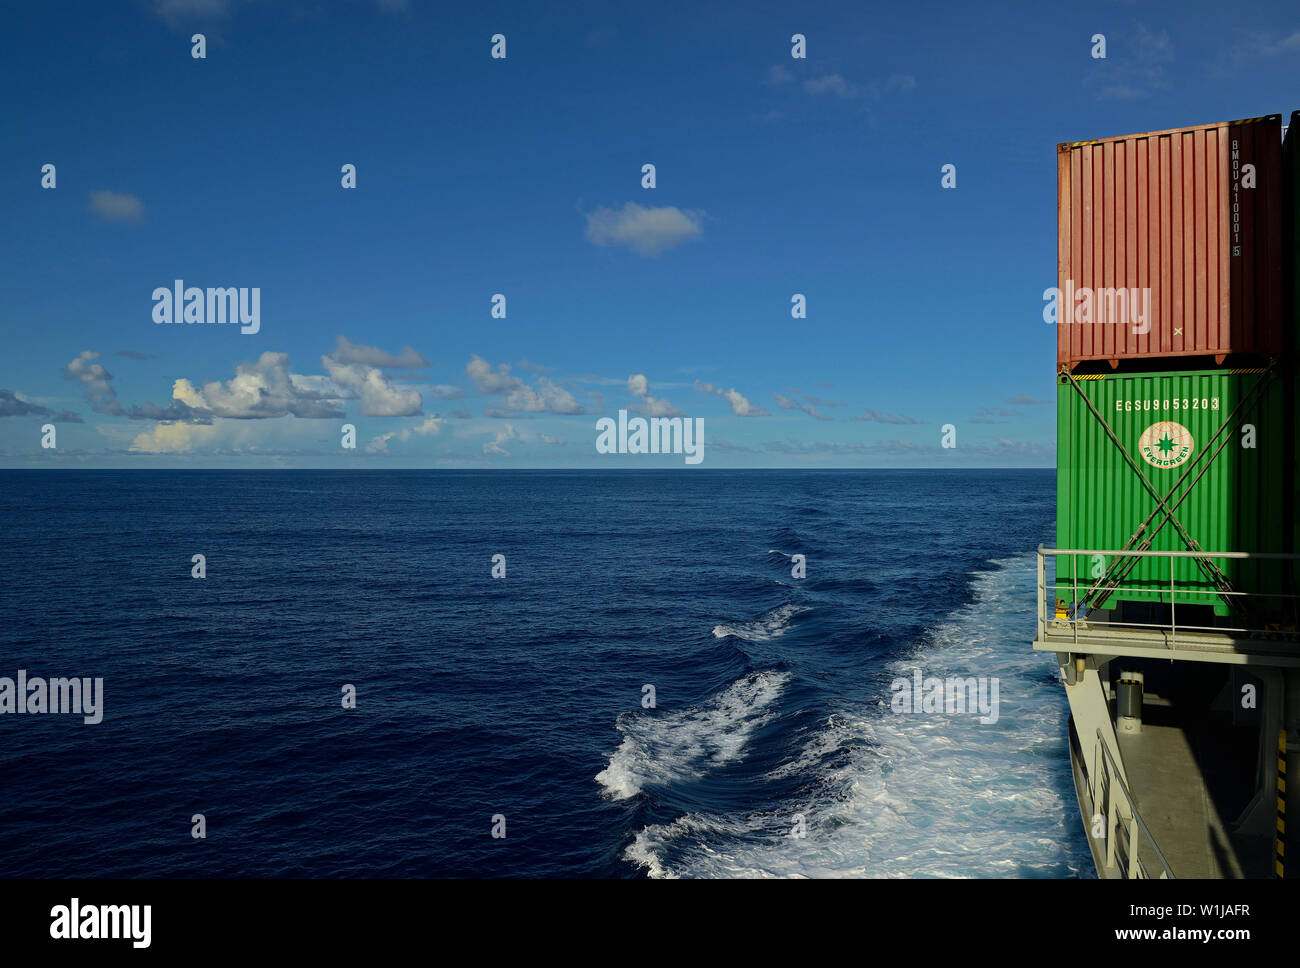 caribbean sea, international waters - october 19, 2013: view from the forecastle of containership conti daphne (imo 9357121) onto the sea - Stock Image